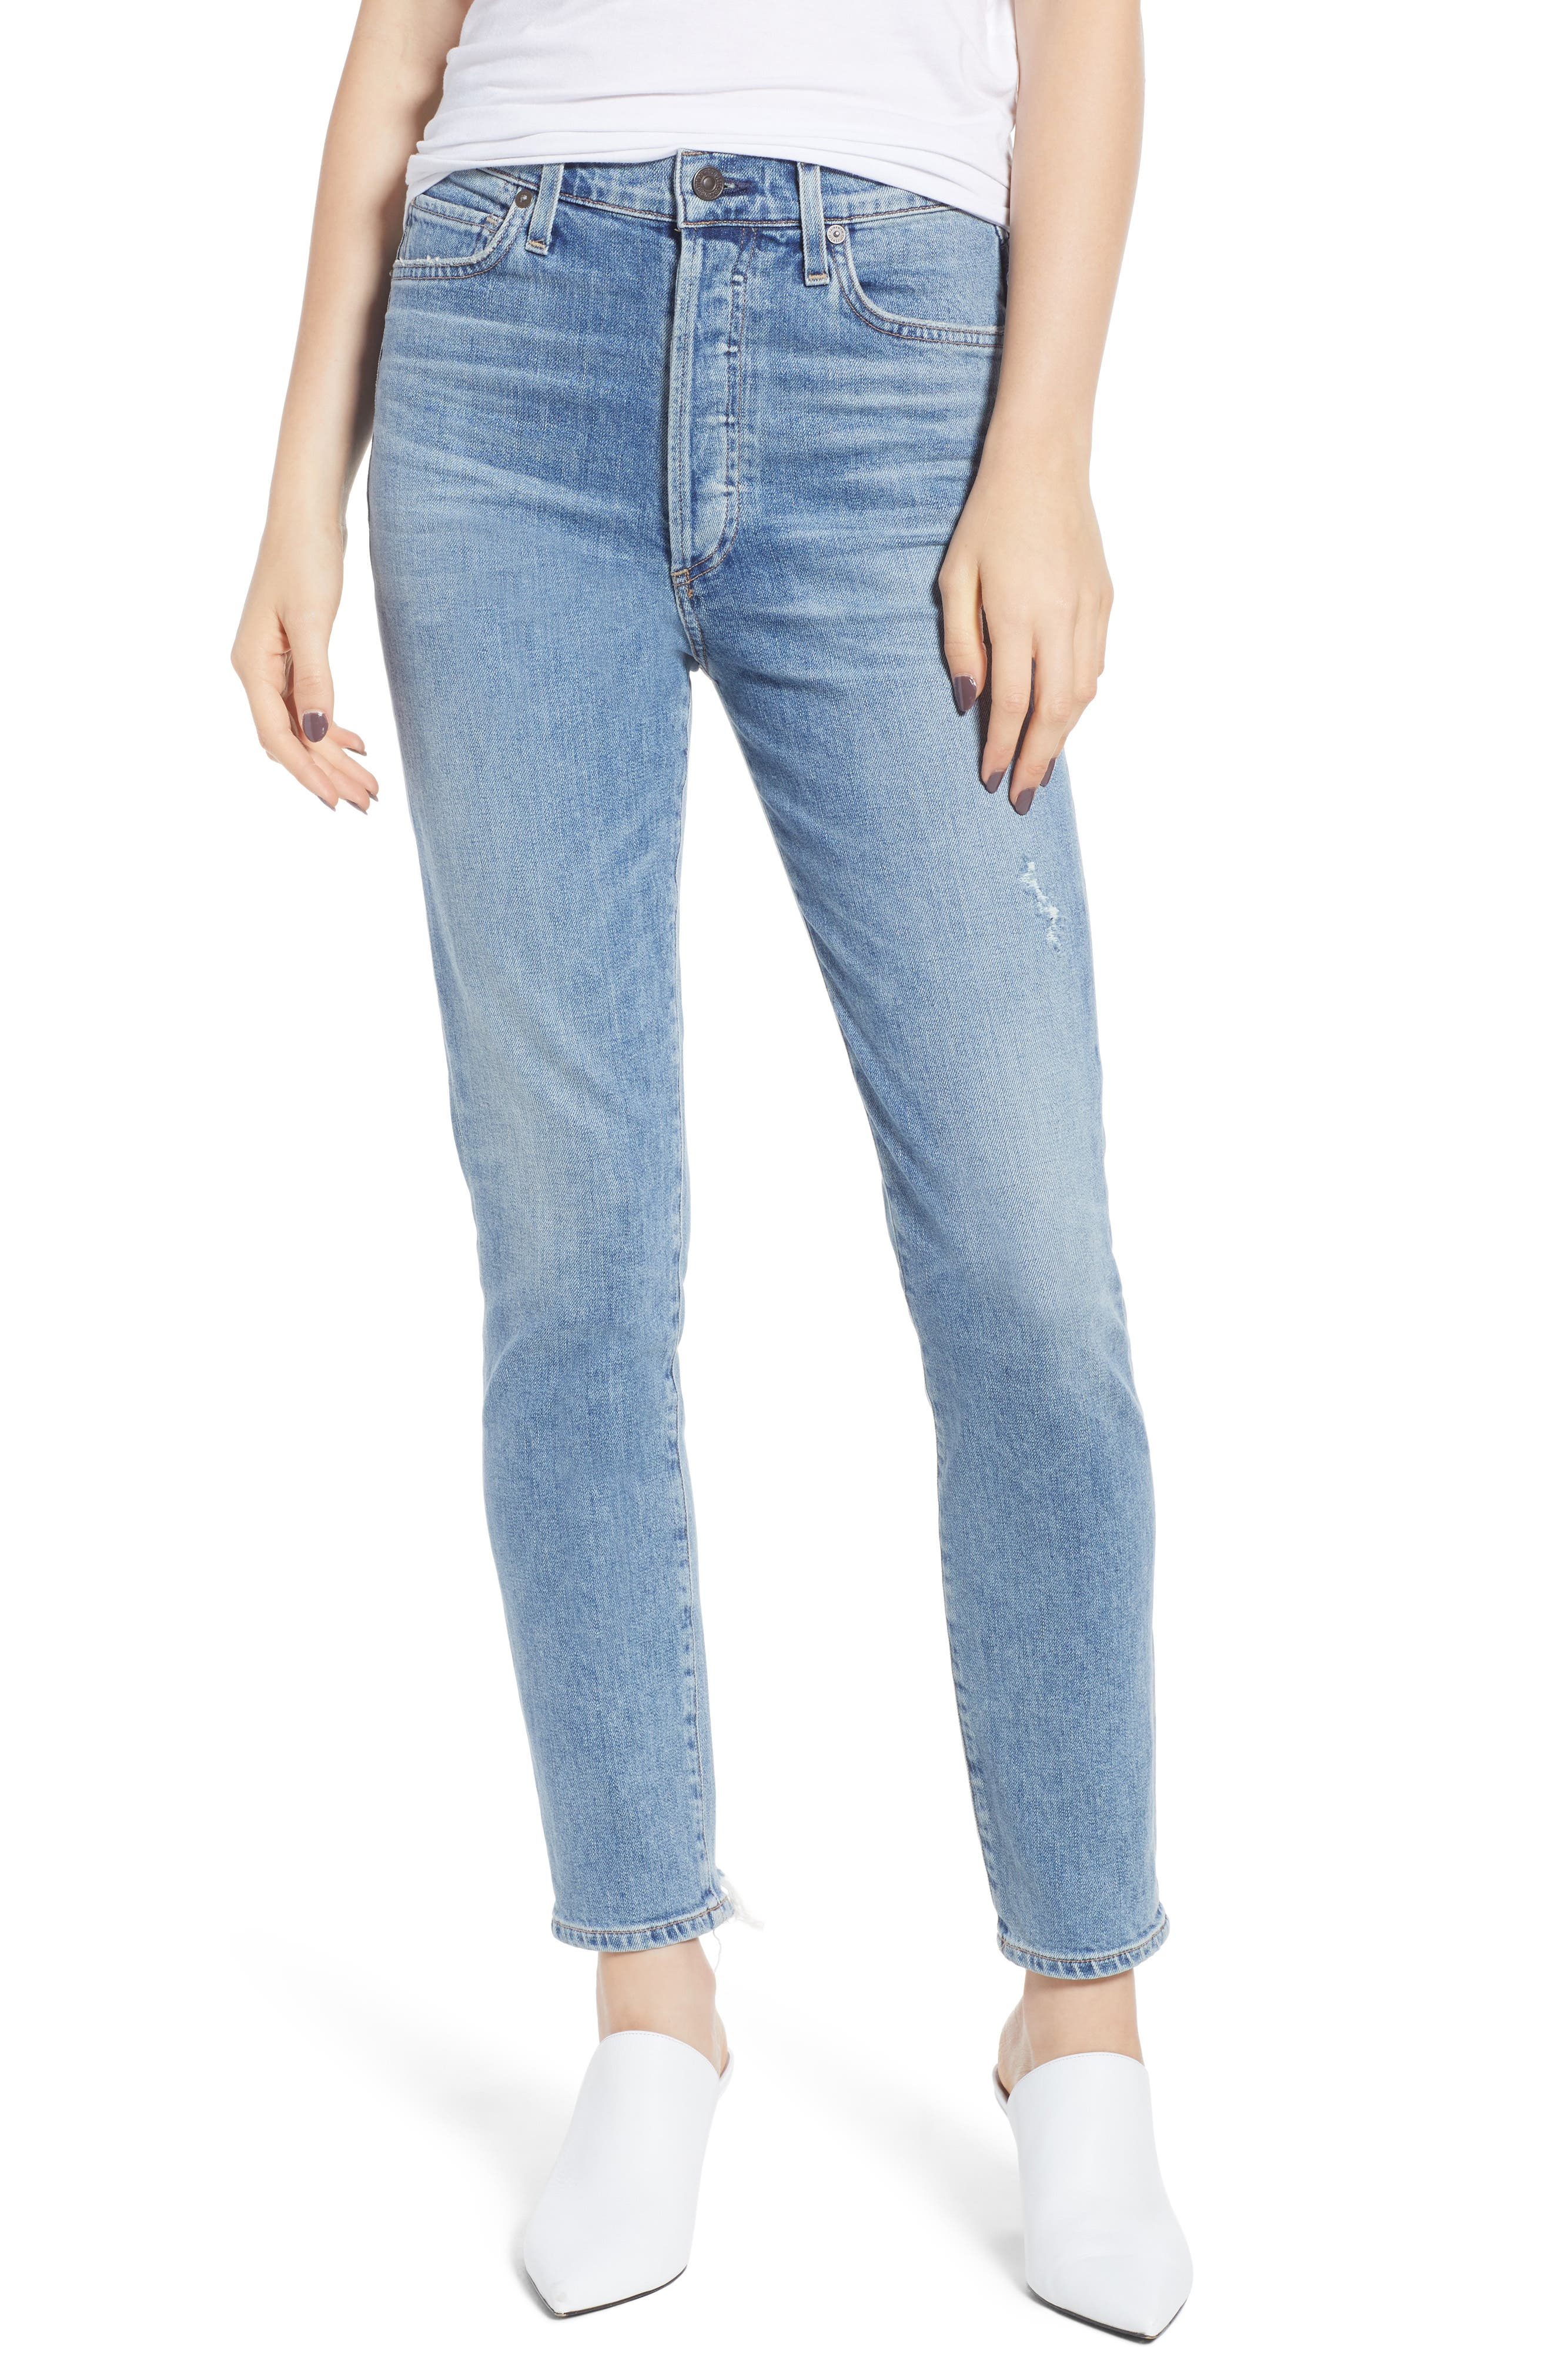 CITIZENS OF HUMANITY, Olivia High Waist Ankle Slim Jeans, Main thumbnail 1, color, BACK ROAD